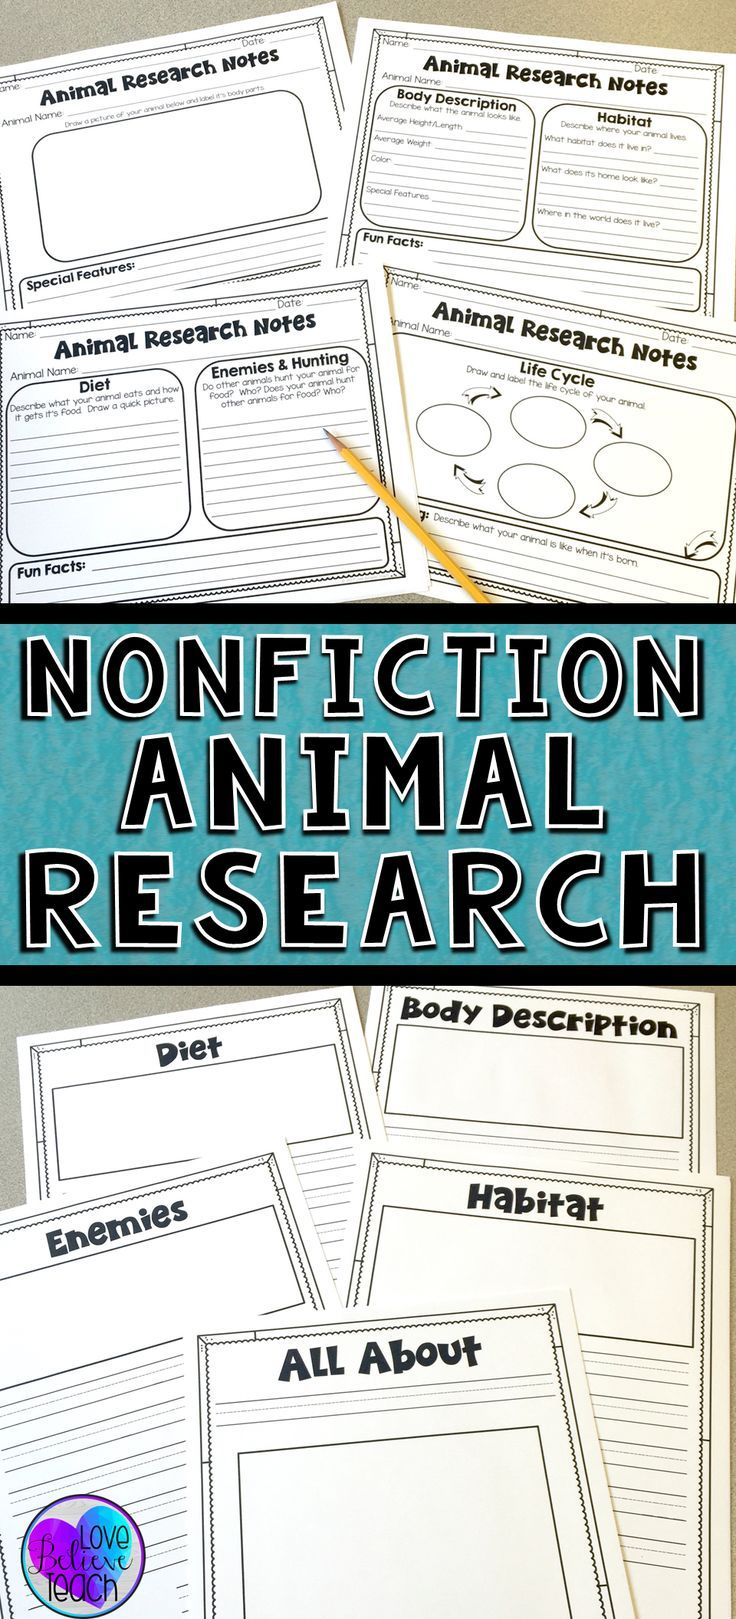 Animal research reports are a snap to plan and implement with this writing unit.  The nonfiction unit is full of graphic organizers, a step-by-step guide, and many options to help you differentiate materials to meet the needs of your students.  It's a per